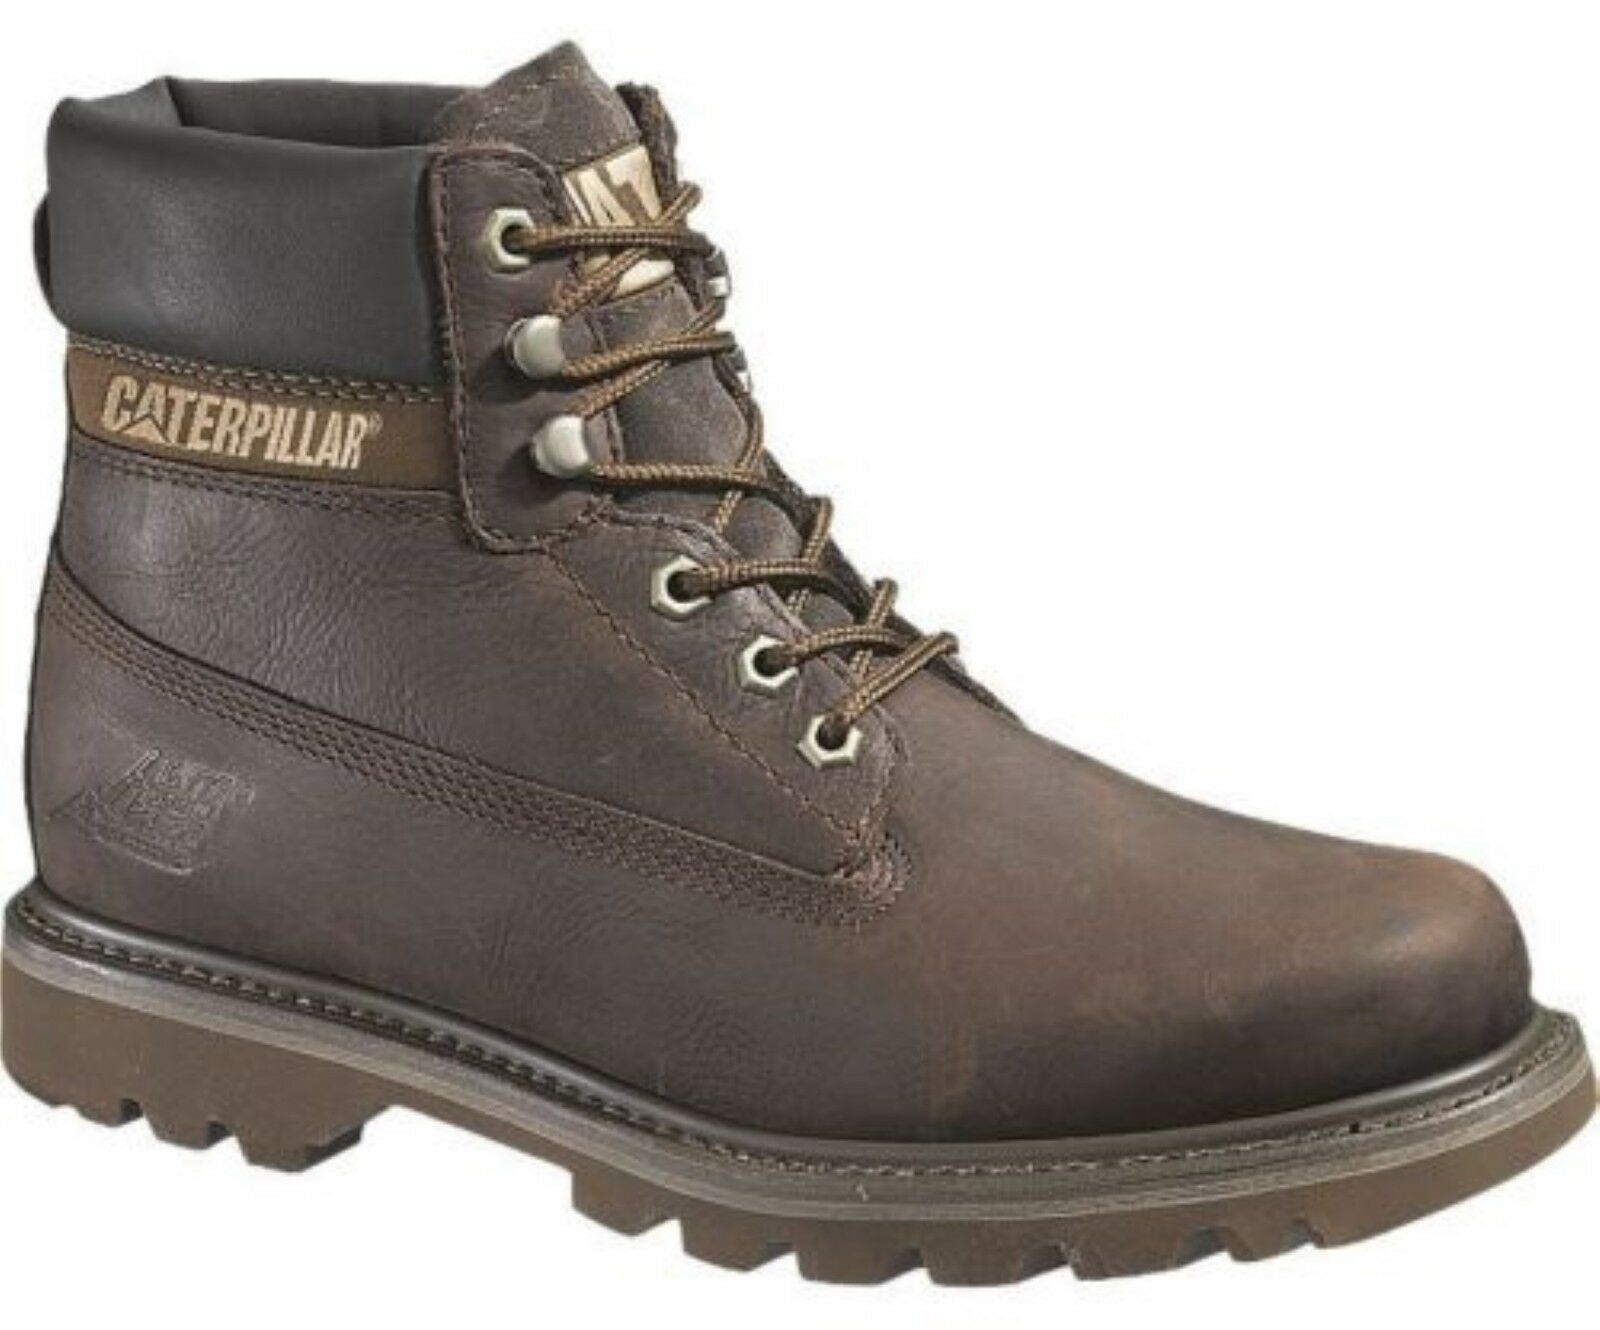 Caterpillar Coloreado da Uomo in Pelle Marrone Cioccolato Alto Alto Alto Stivaletti Stringati 80245f